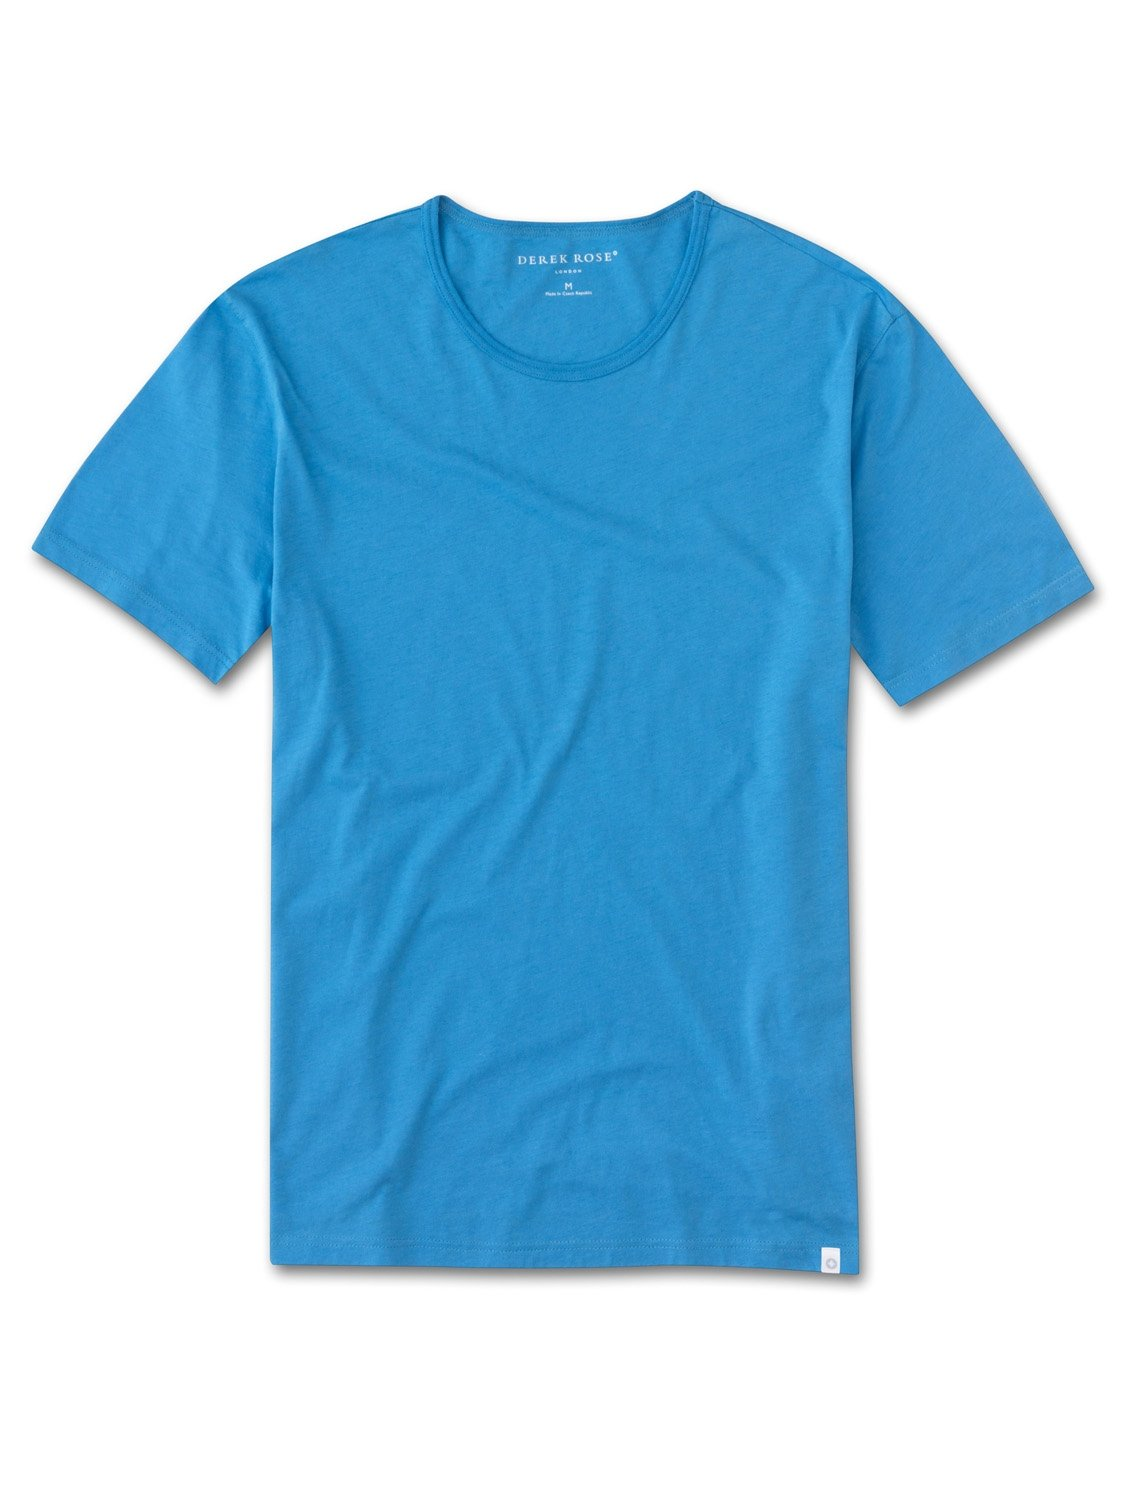 Men's Short Sleeve T-Shirt Riley 2 Pima Cotton Blue